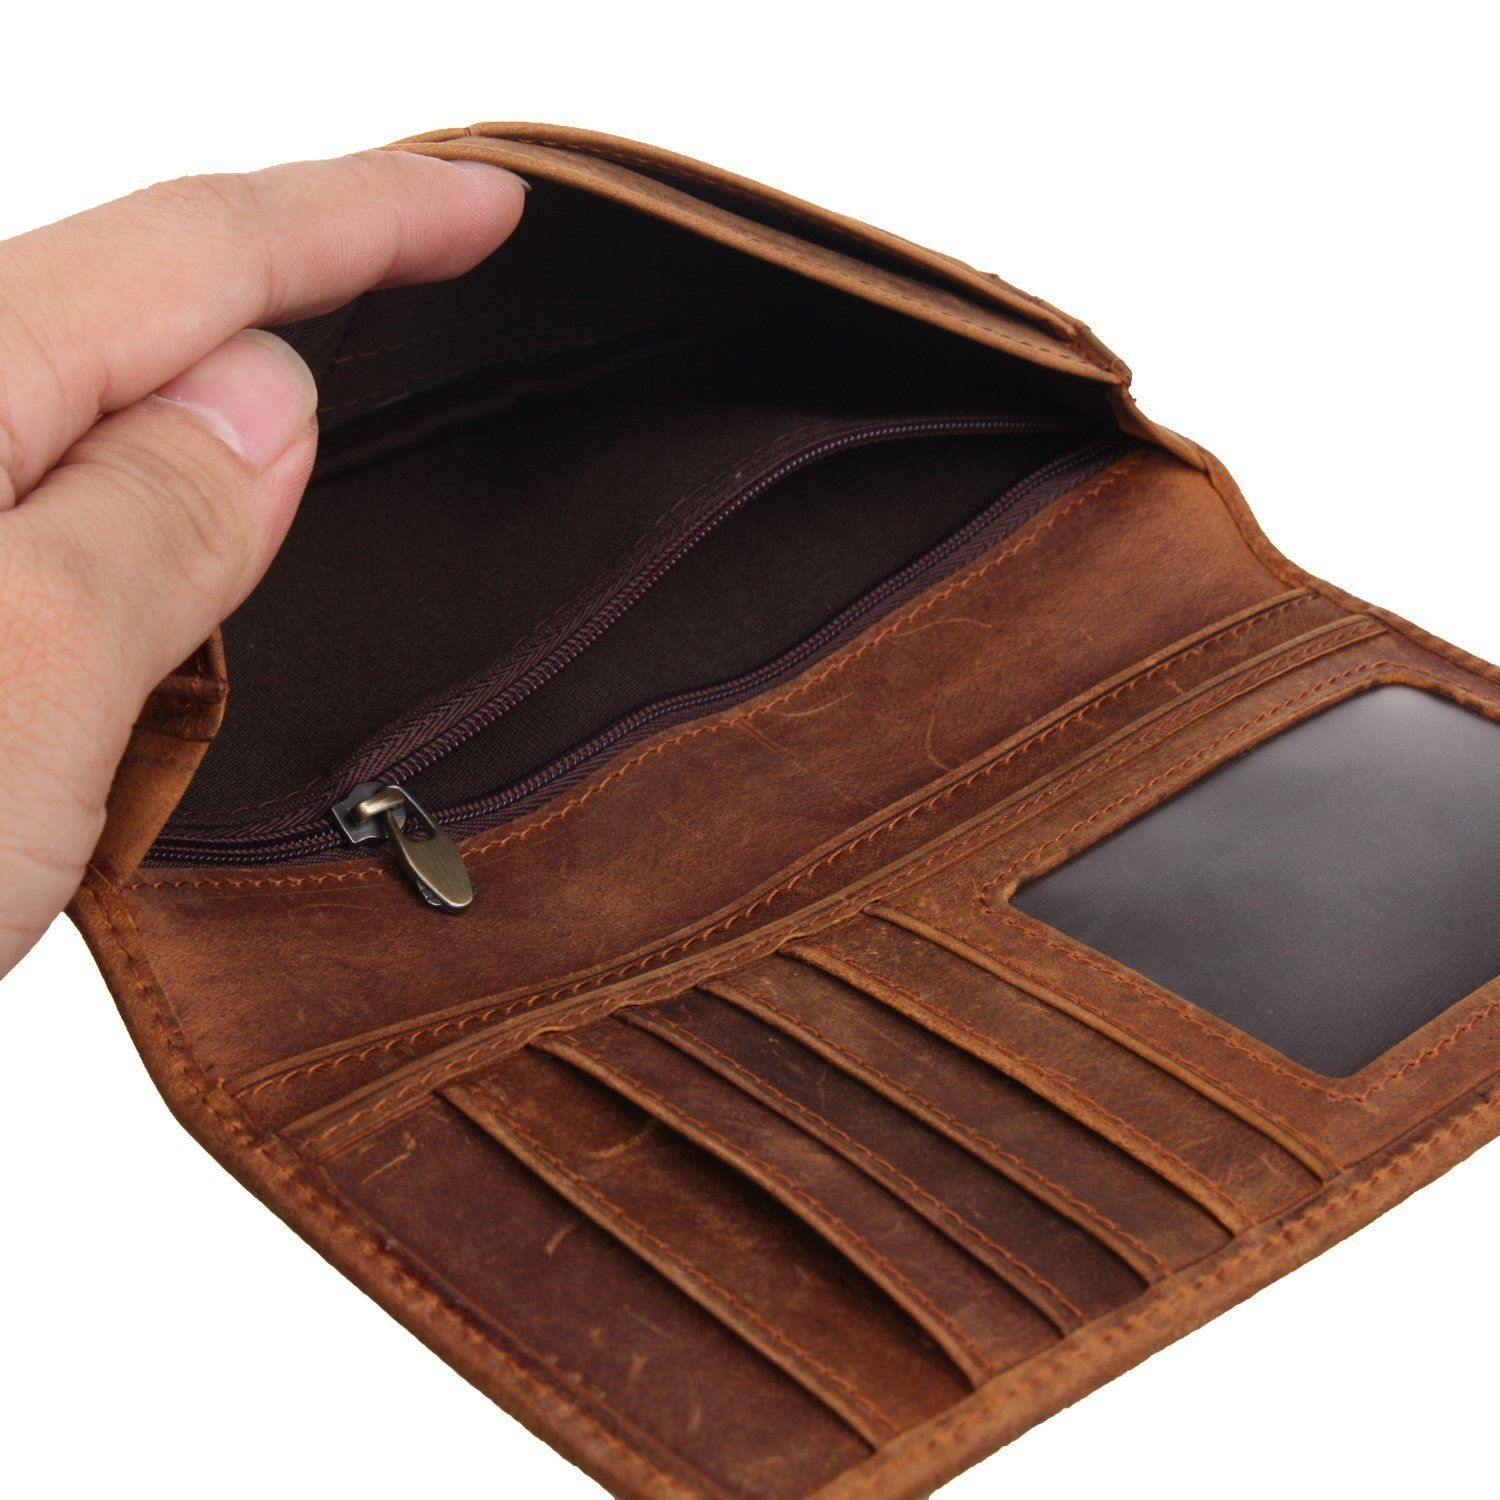 ca1f0c4e243f Texbo Men's Genuine Cow Leather Bifold Long Wallet Brown at Amazon ...